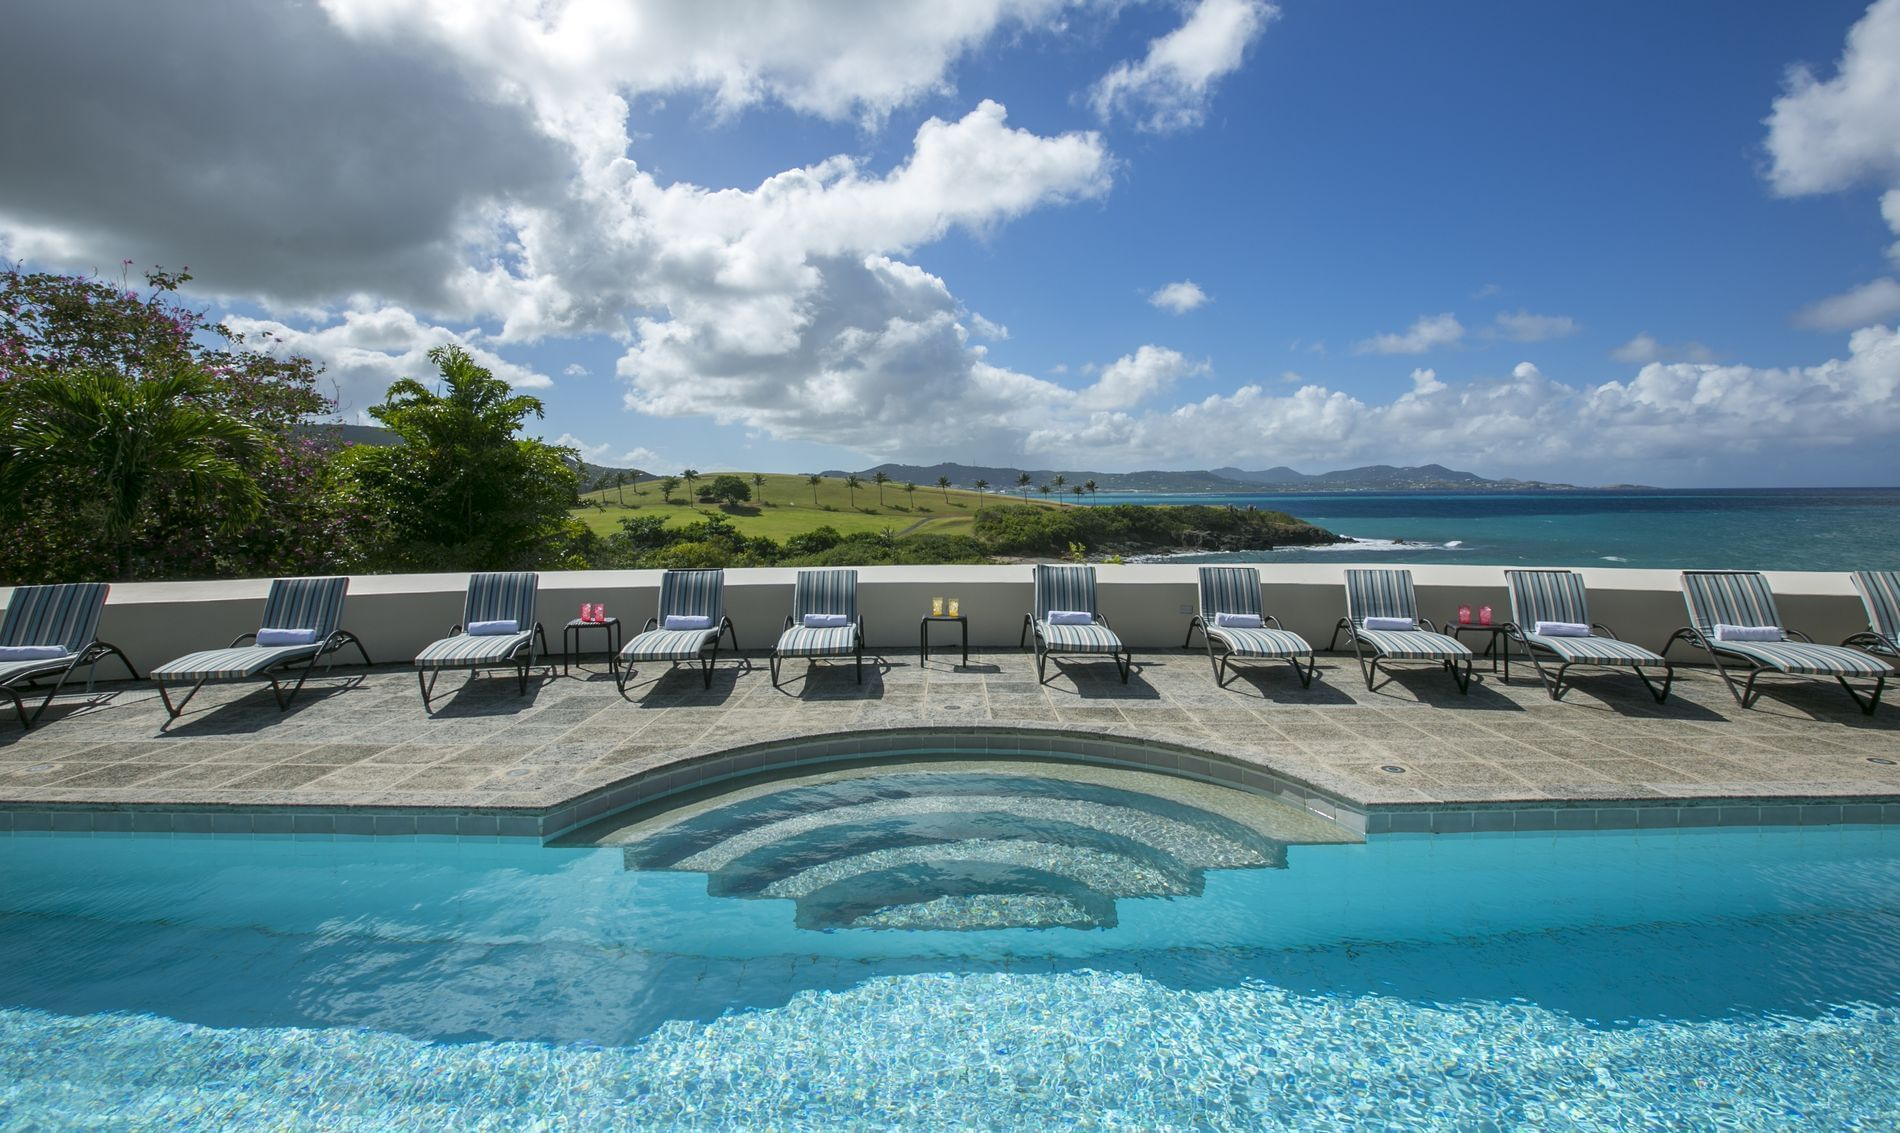 Outdoor Pool Deck with chairs